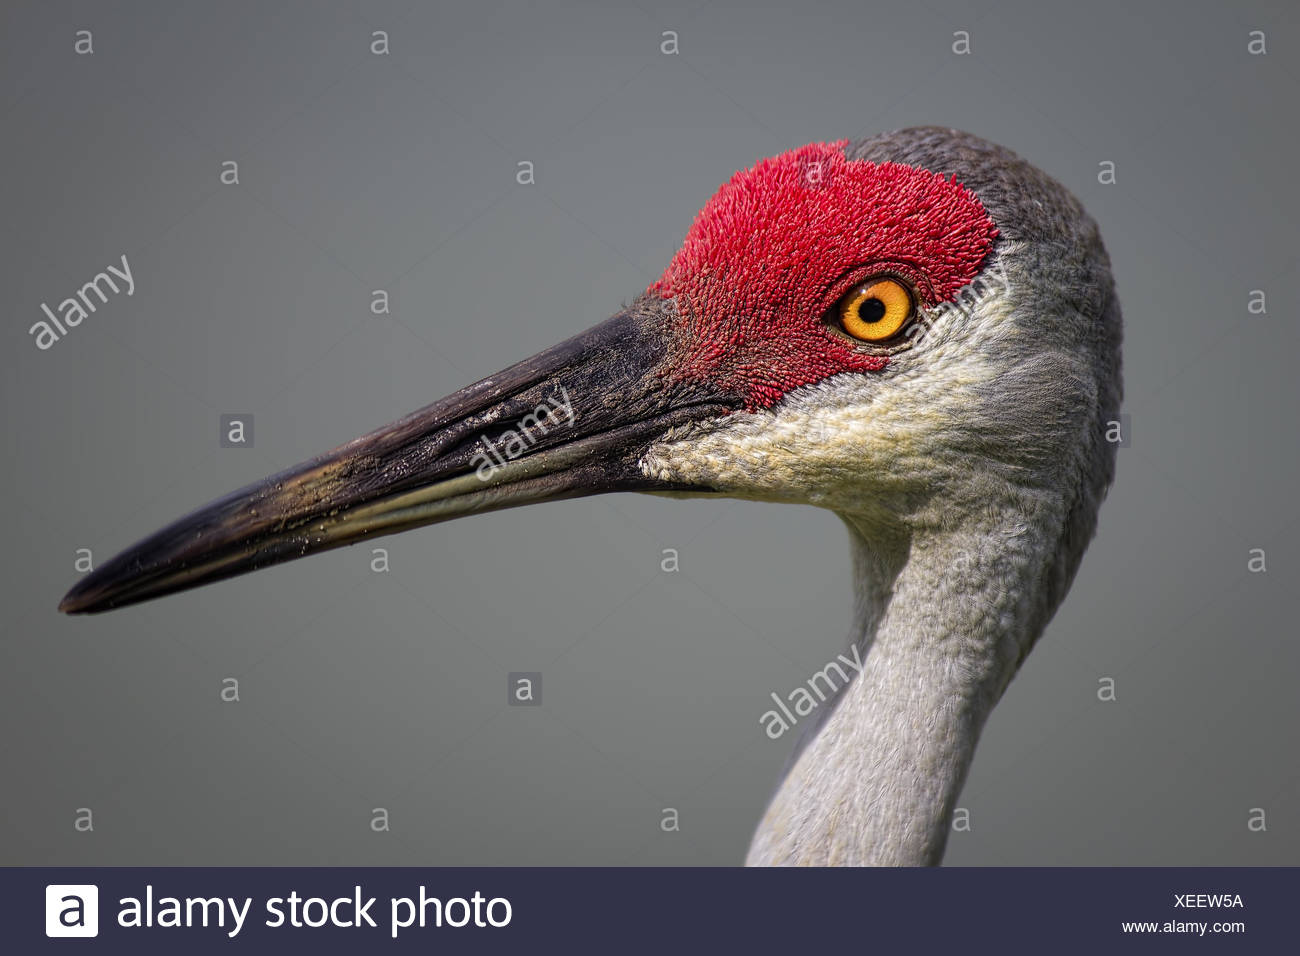 Bird, Sanhill Crane, Day, Florida, USA Stock Photo